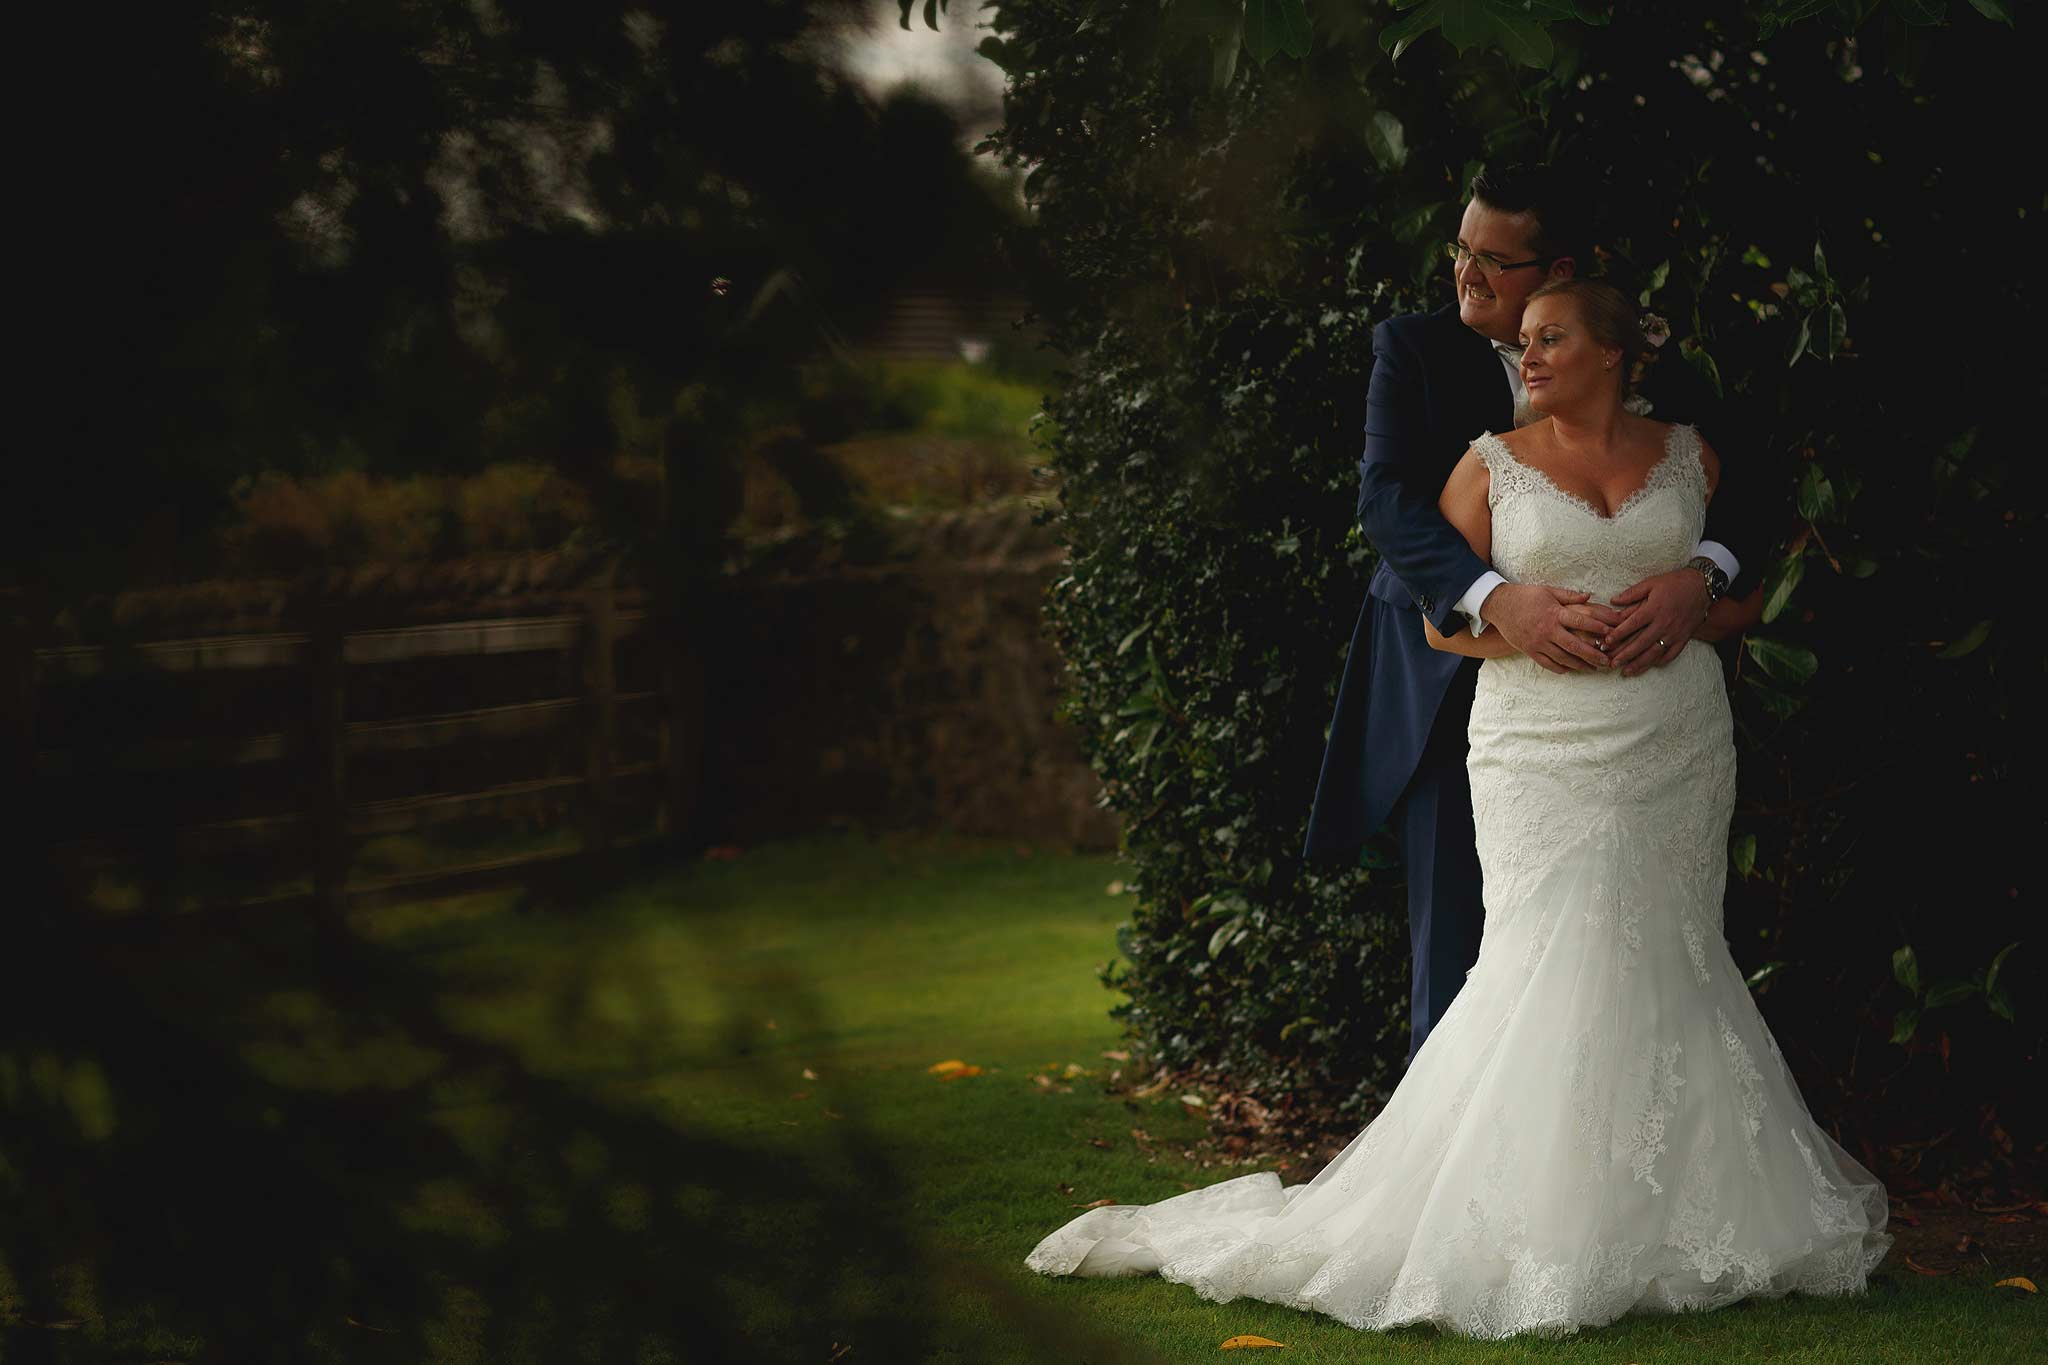 Nice light on the bride and groom at the shireburn arms